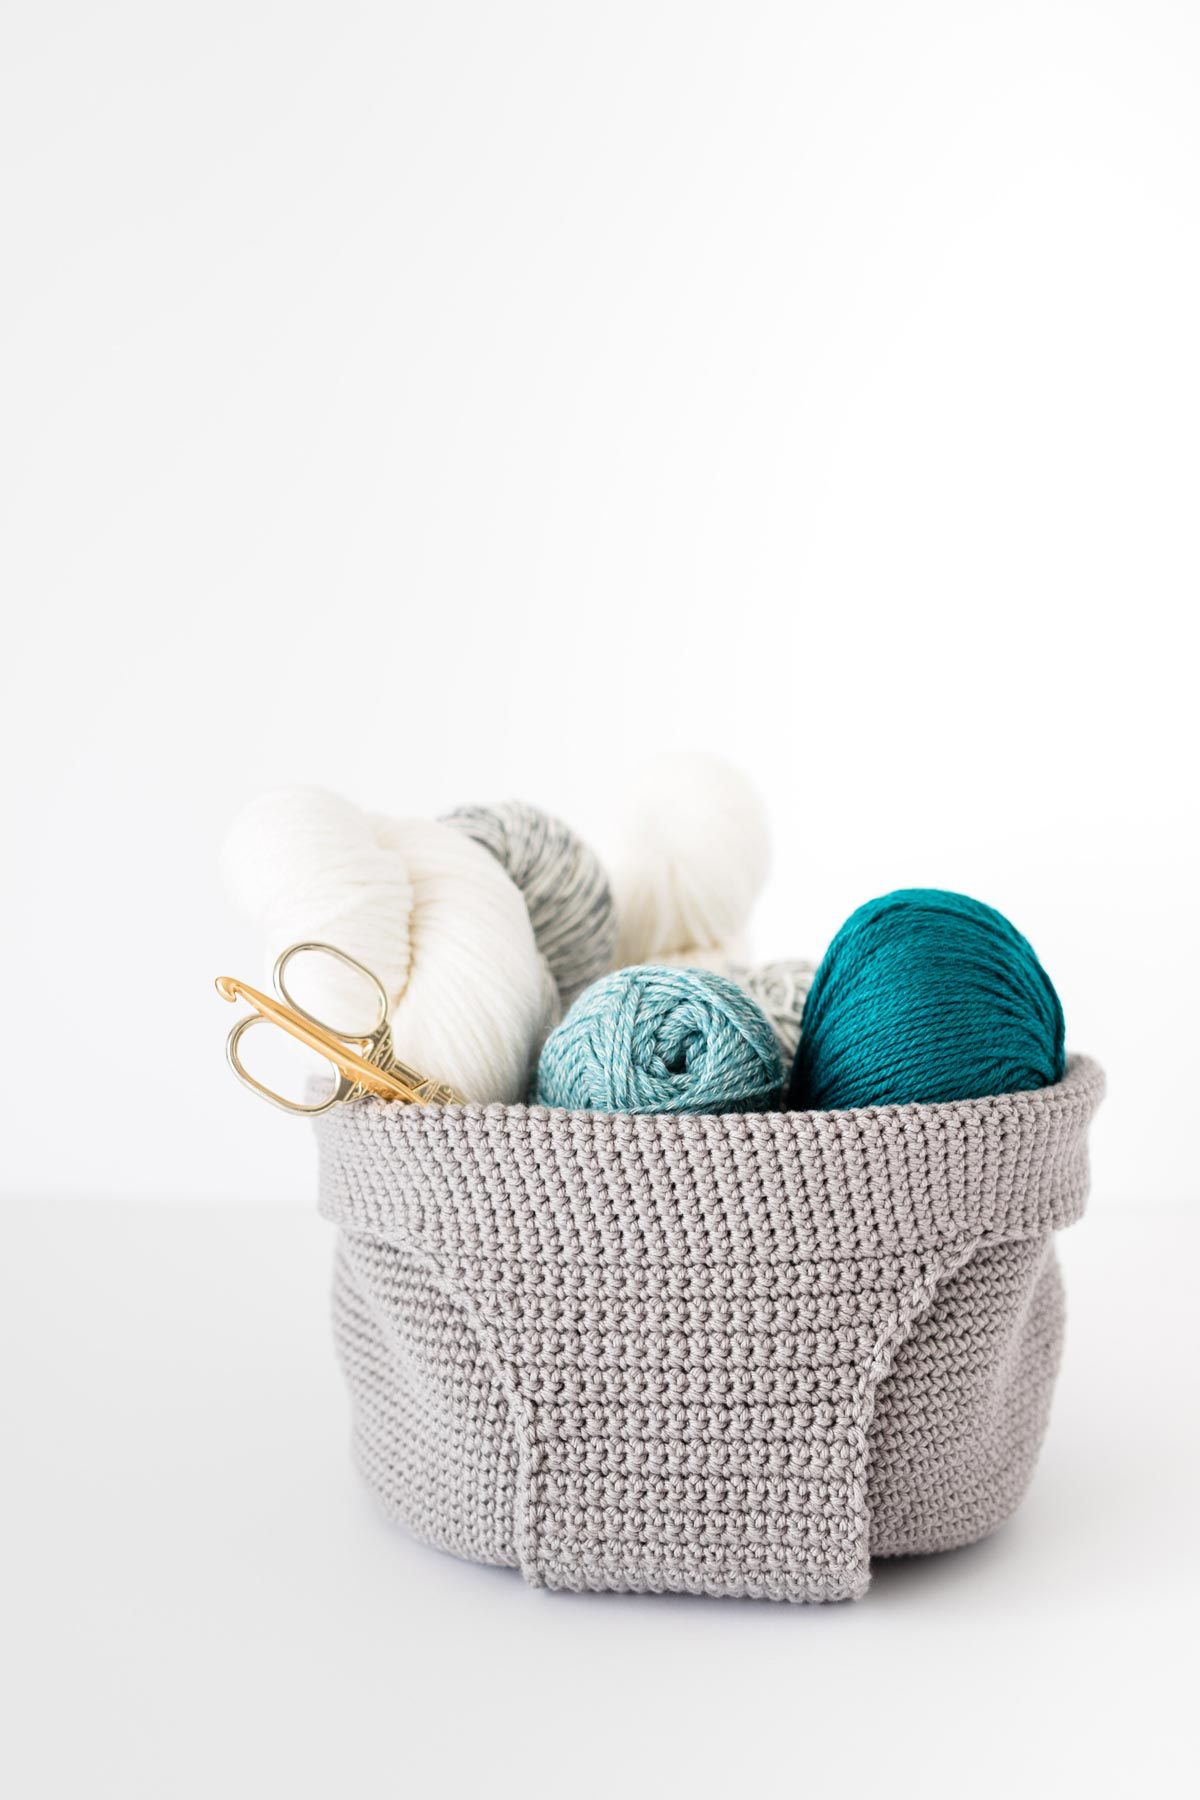 gray cotton crochet yarn basket full of yarn skeins and scissors and crochet hooks